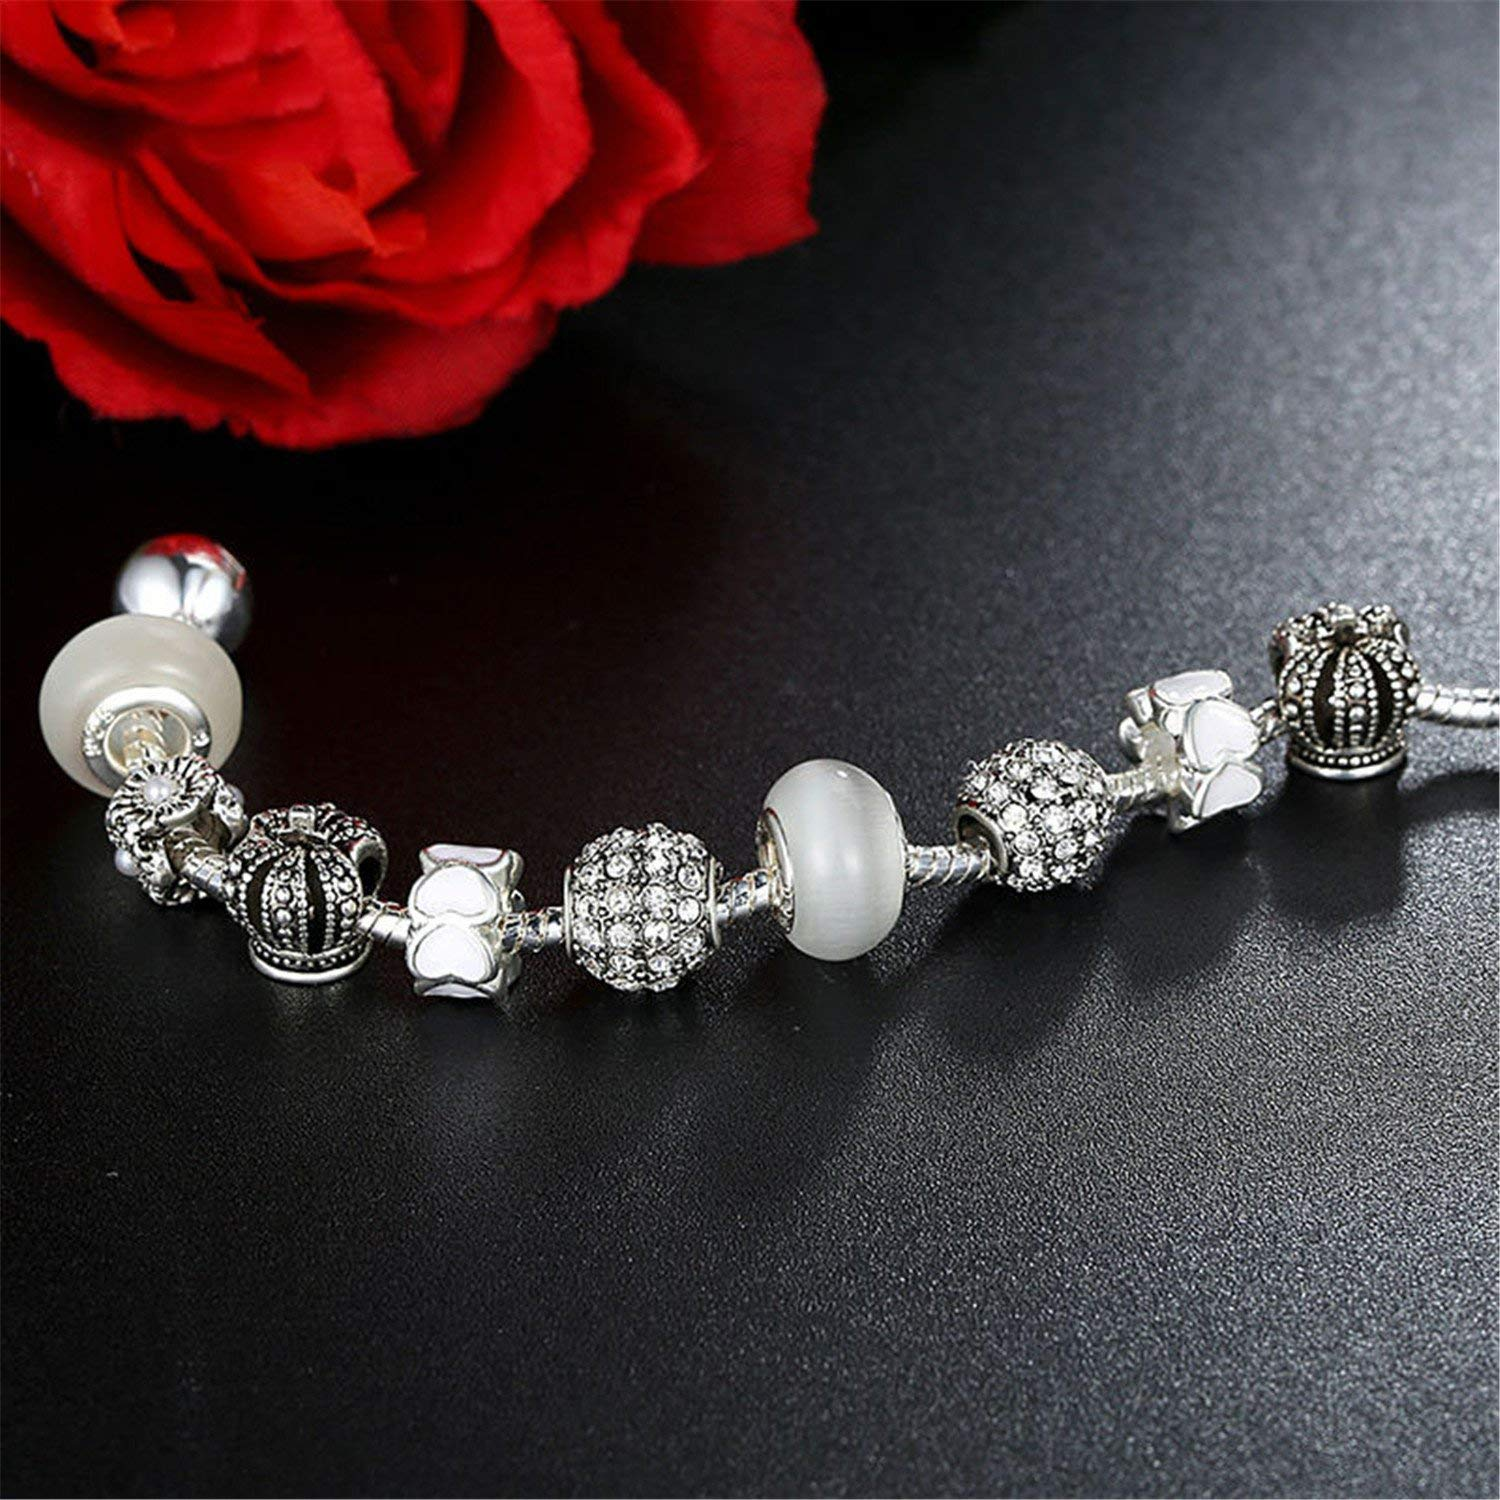 Cookisn Silver Charm Bracelet /& Bangle with Crystal Ball White Beads for Women Drop Shipping PA1456 PA1900 20cm